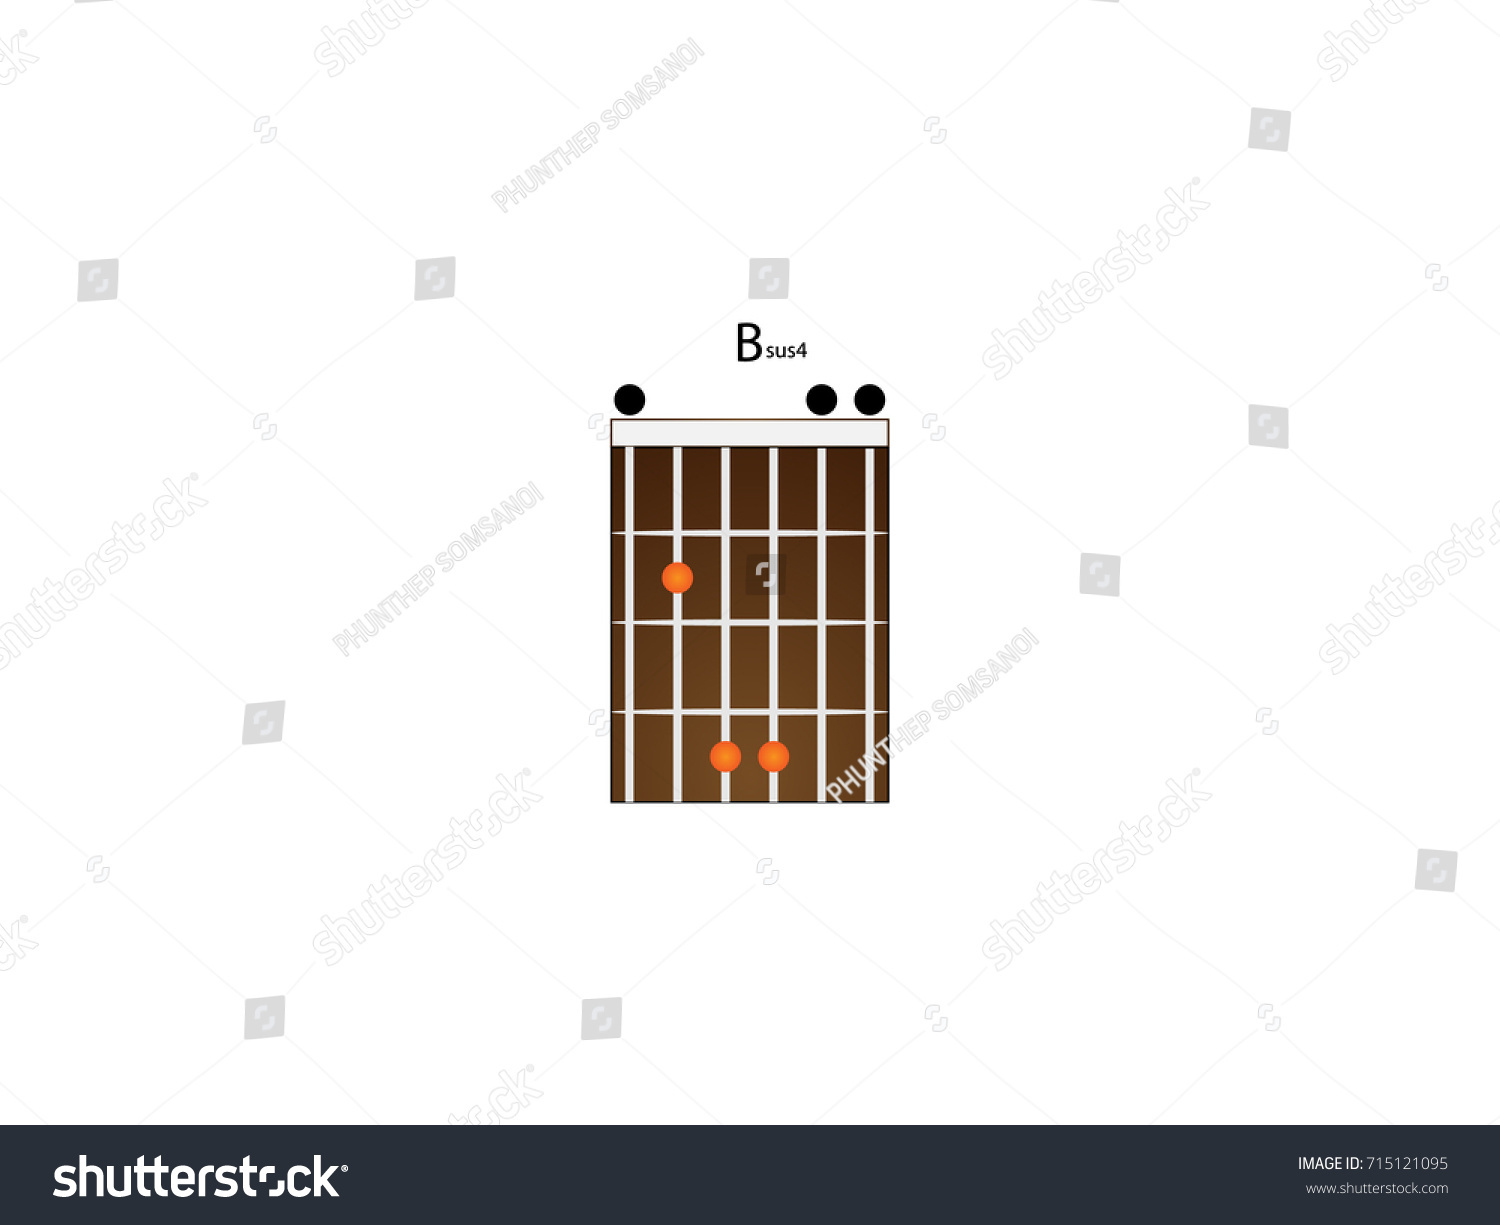 Chord Guitar Bsus 4 Stock Vector Royalty Free 715121095 Shutterstock